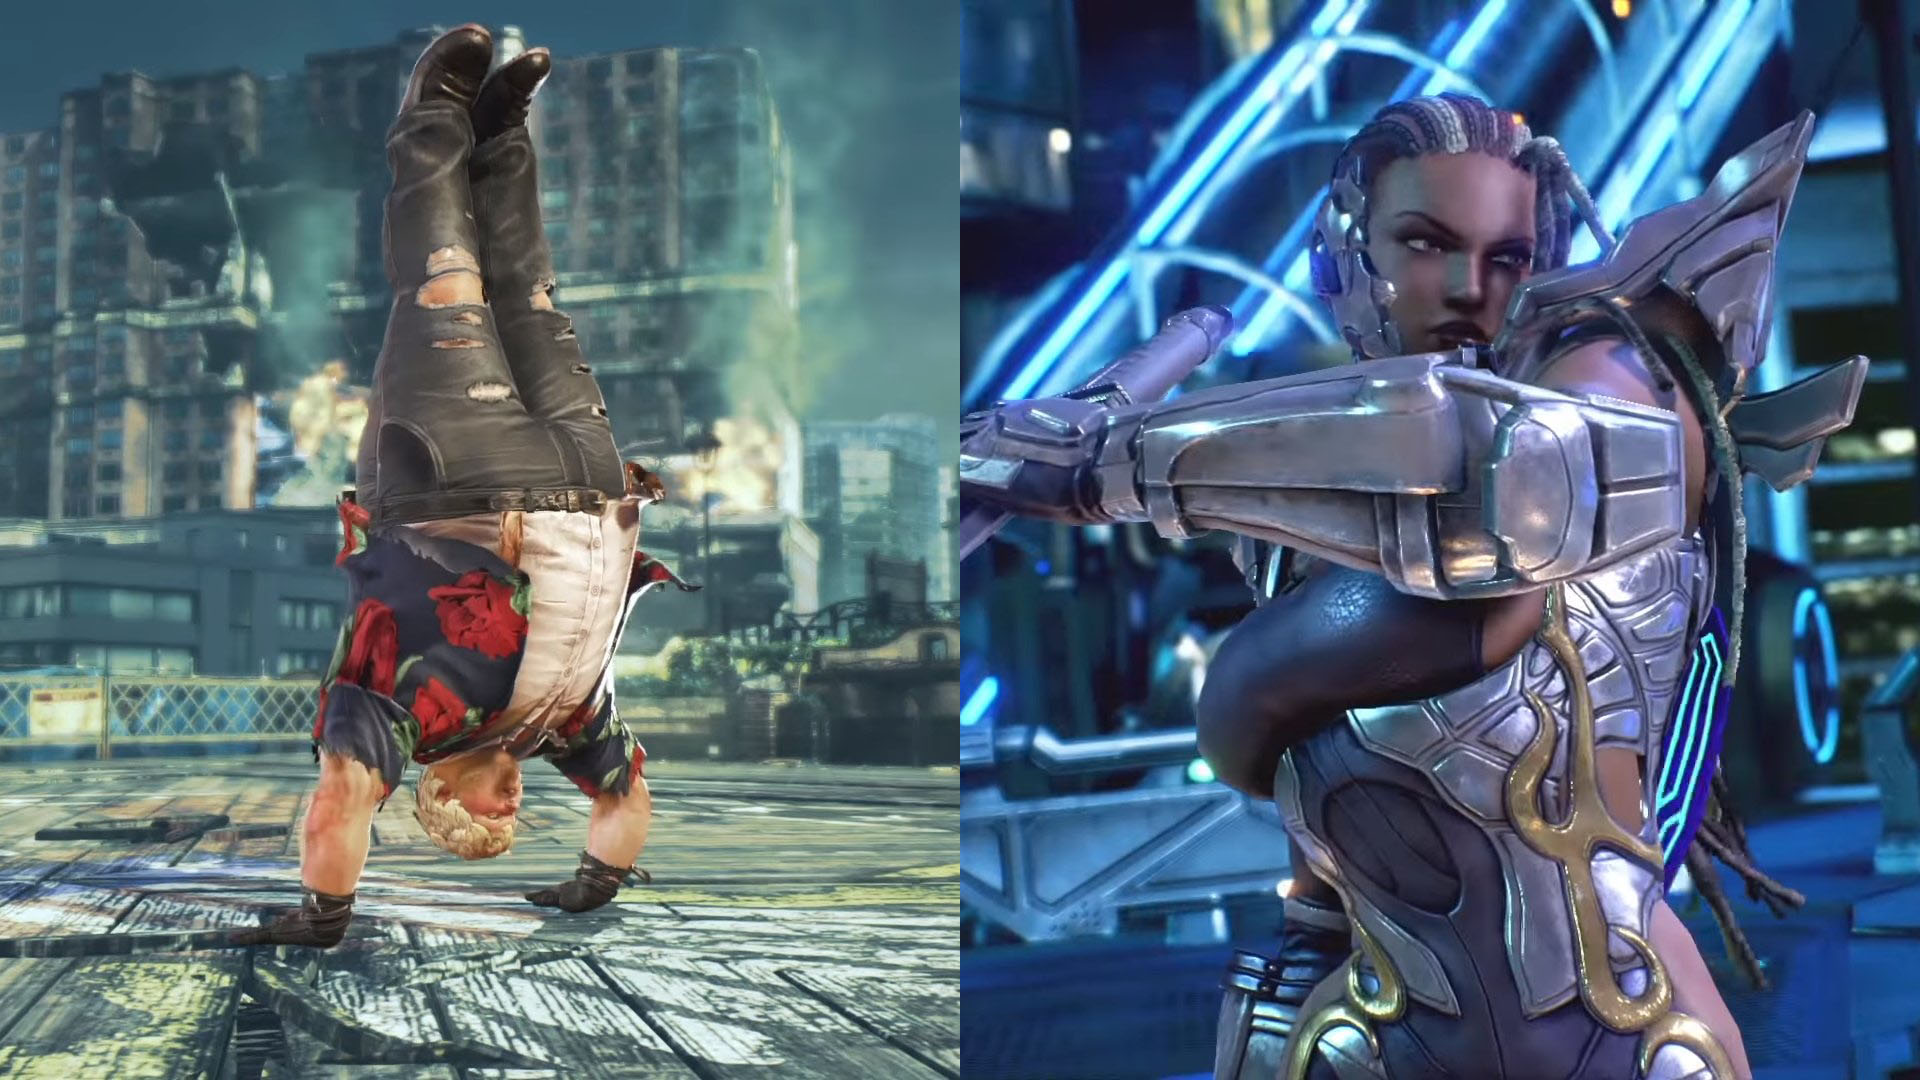 Tekken 7 Adds Bob And Master Raven To The Roster Of Fighters